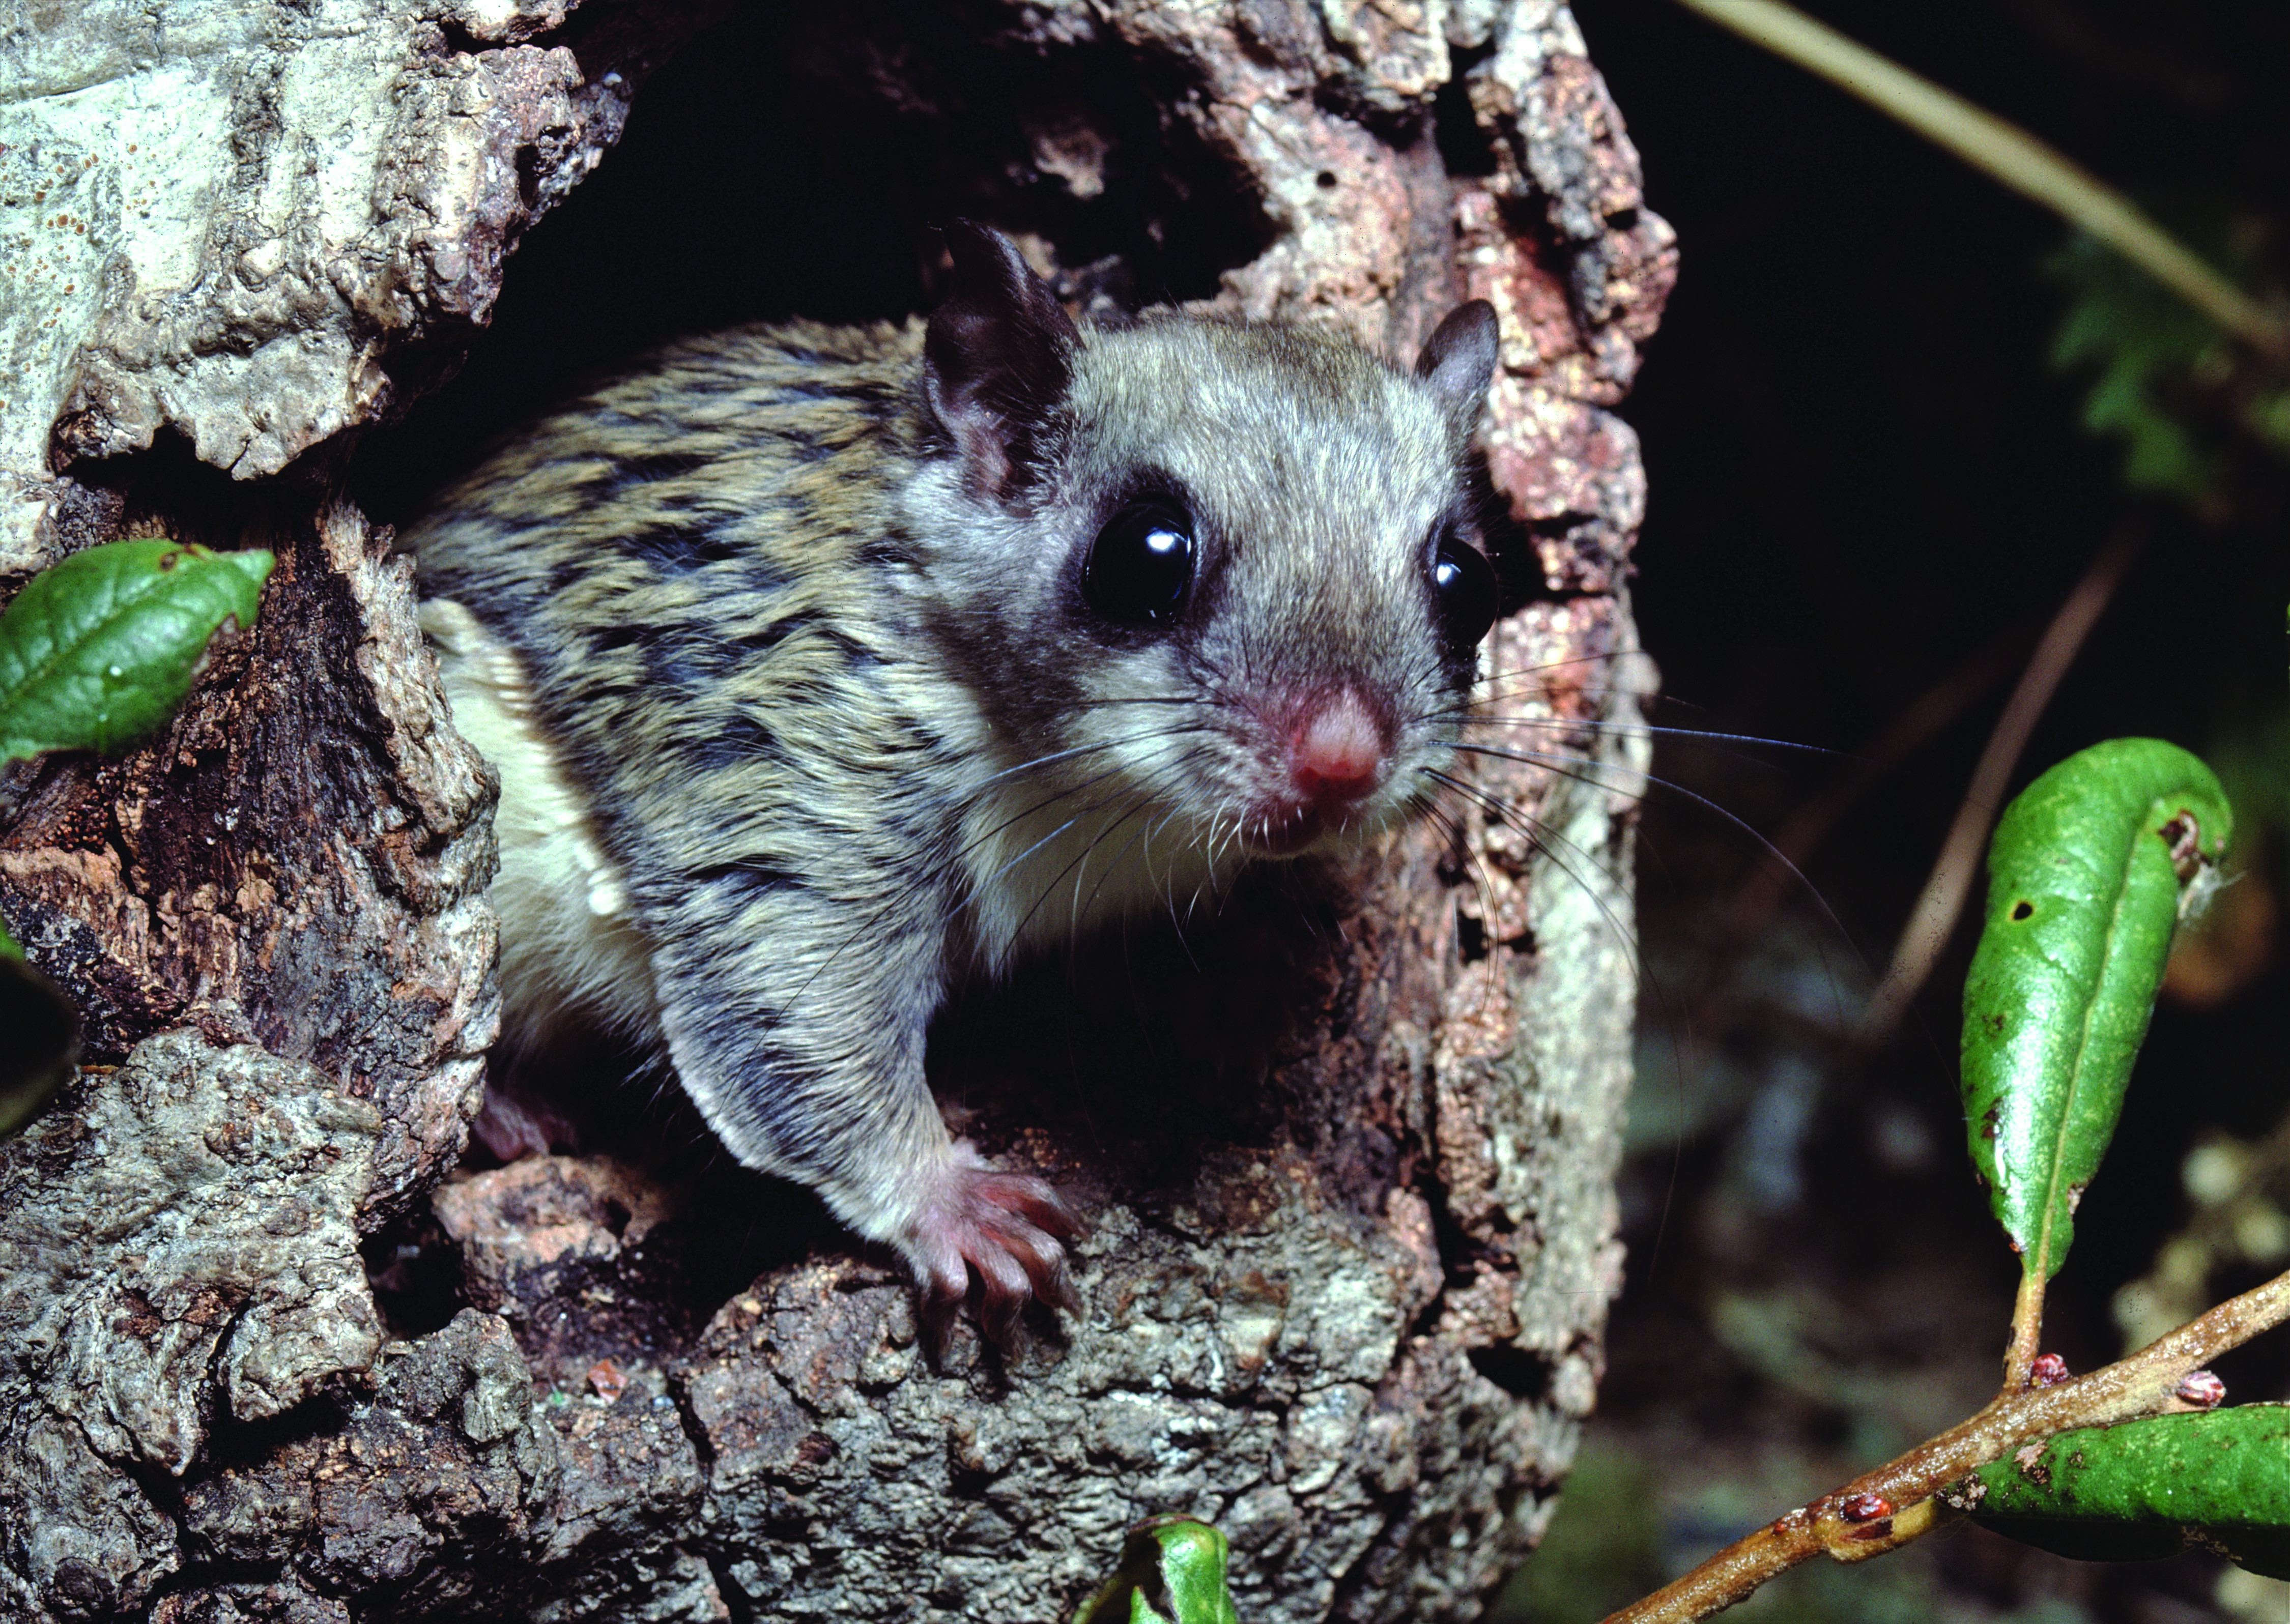 THE BETTER TO SEE YOU WITH: Both the nocturnal northern flying squirrels and southern flying squirrels have large eyes, which helps them to see better at night.